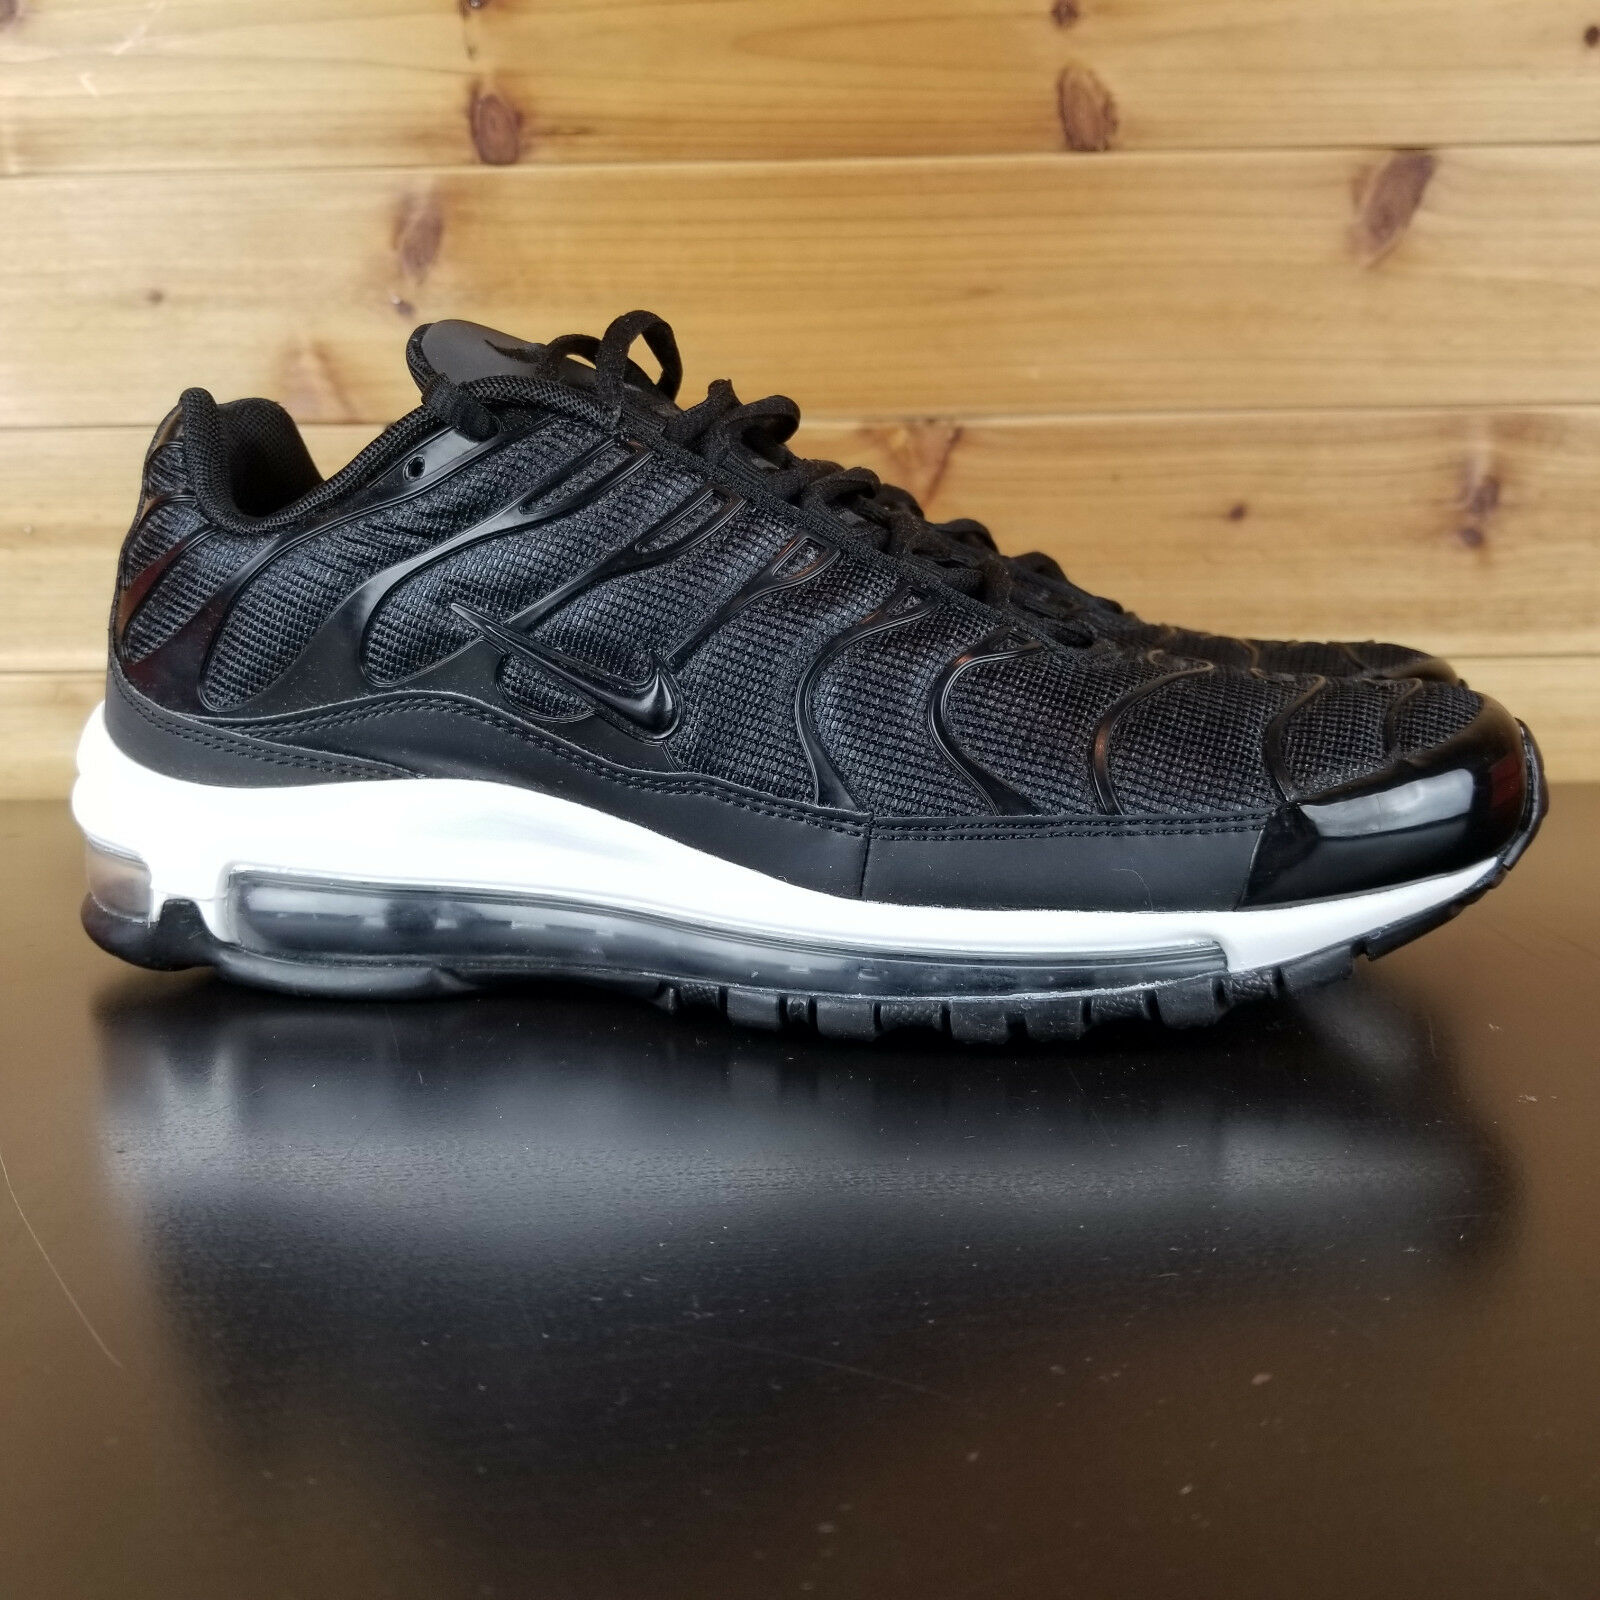 Nike Air Max Plus 97 Hybrid AH8144 001 Black Anthracite